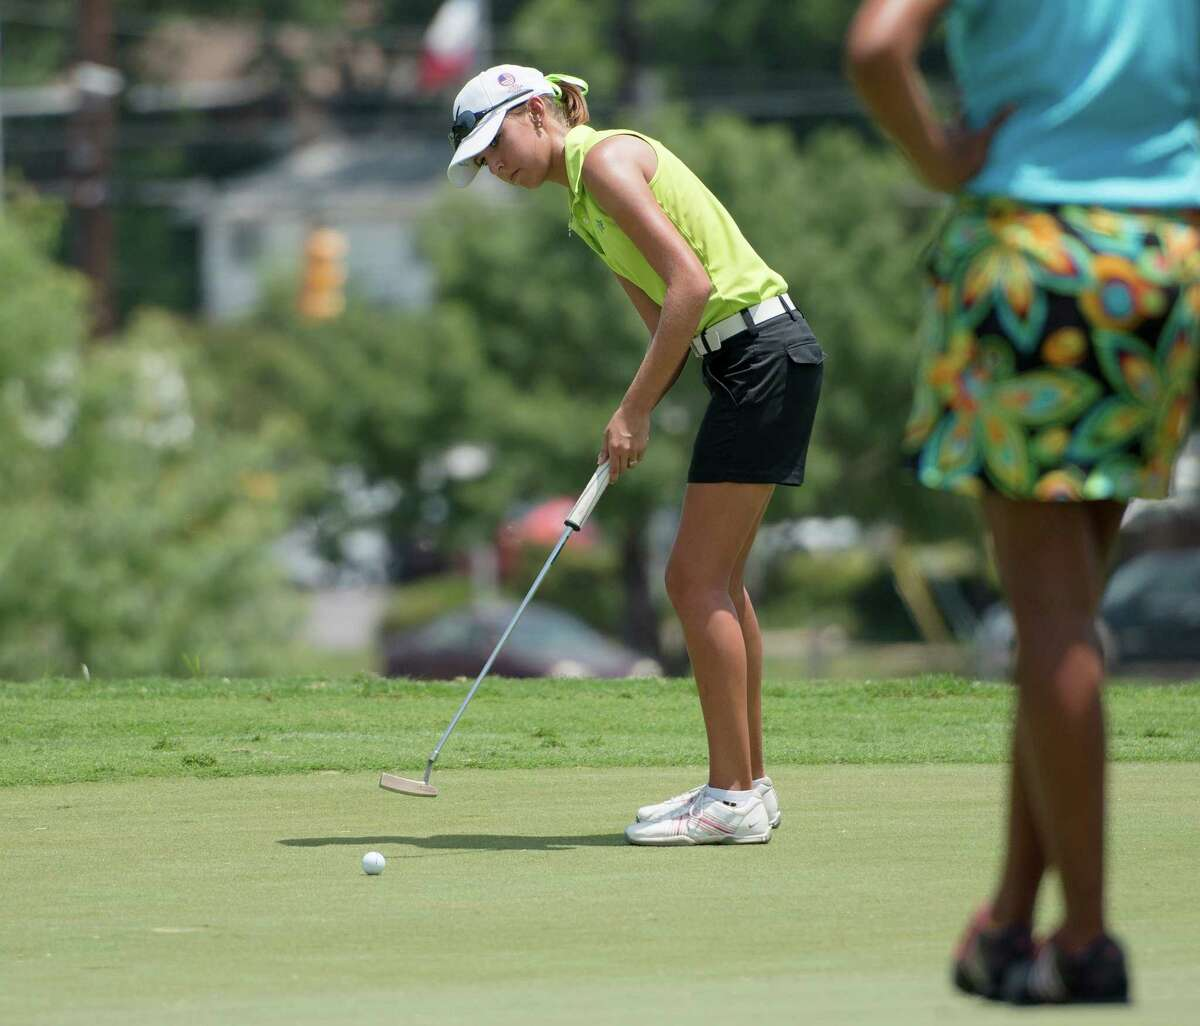 Caitlin Brown putts during the GSA Junior Championship, Thursday, July 25, 2013, at Brackenridge Park Municipal Golf Course in San Antonio. (Darren Abate/For the Express-News)